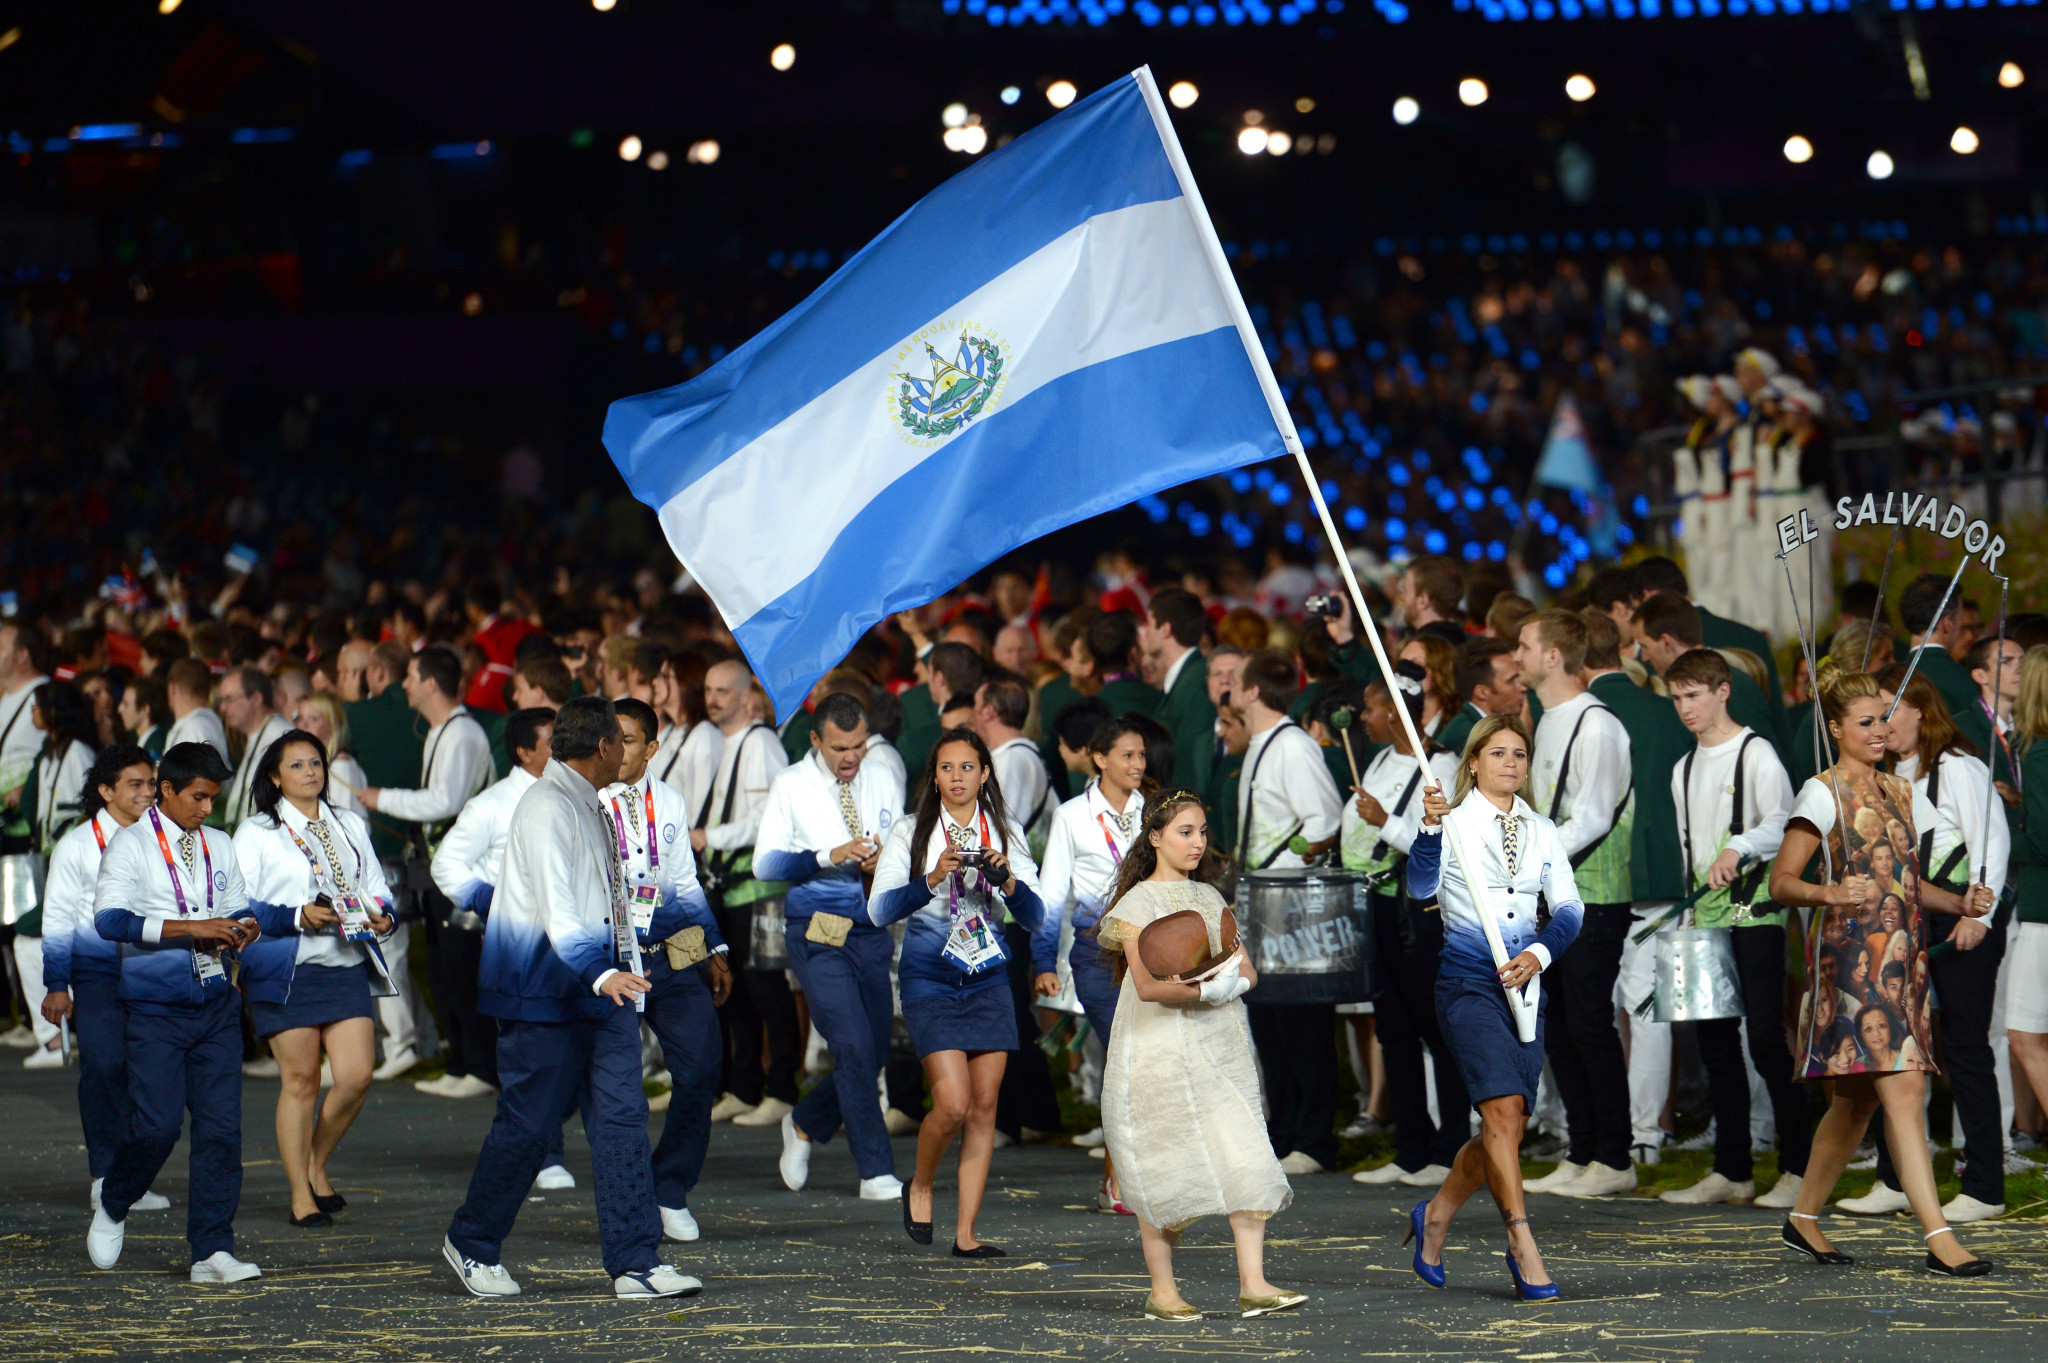 El Salvador has never won an Olympic medal ©Getty Images